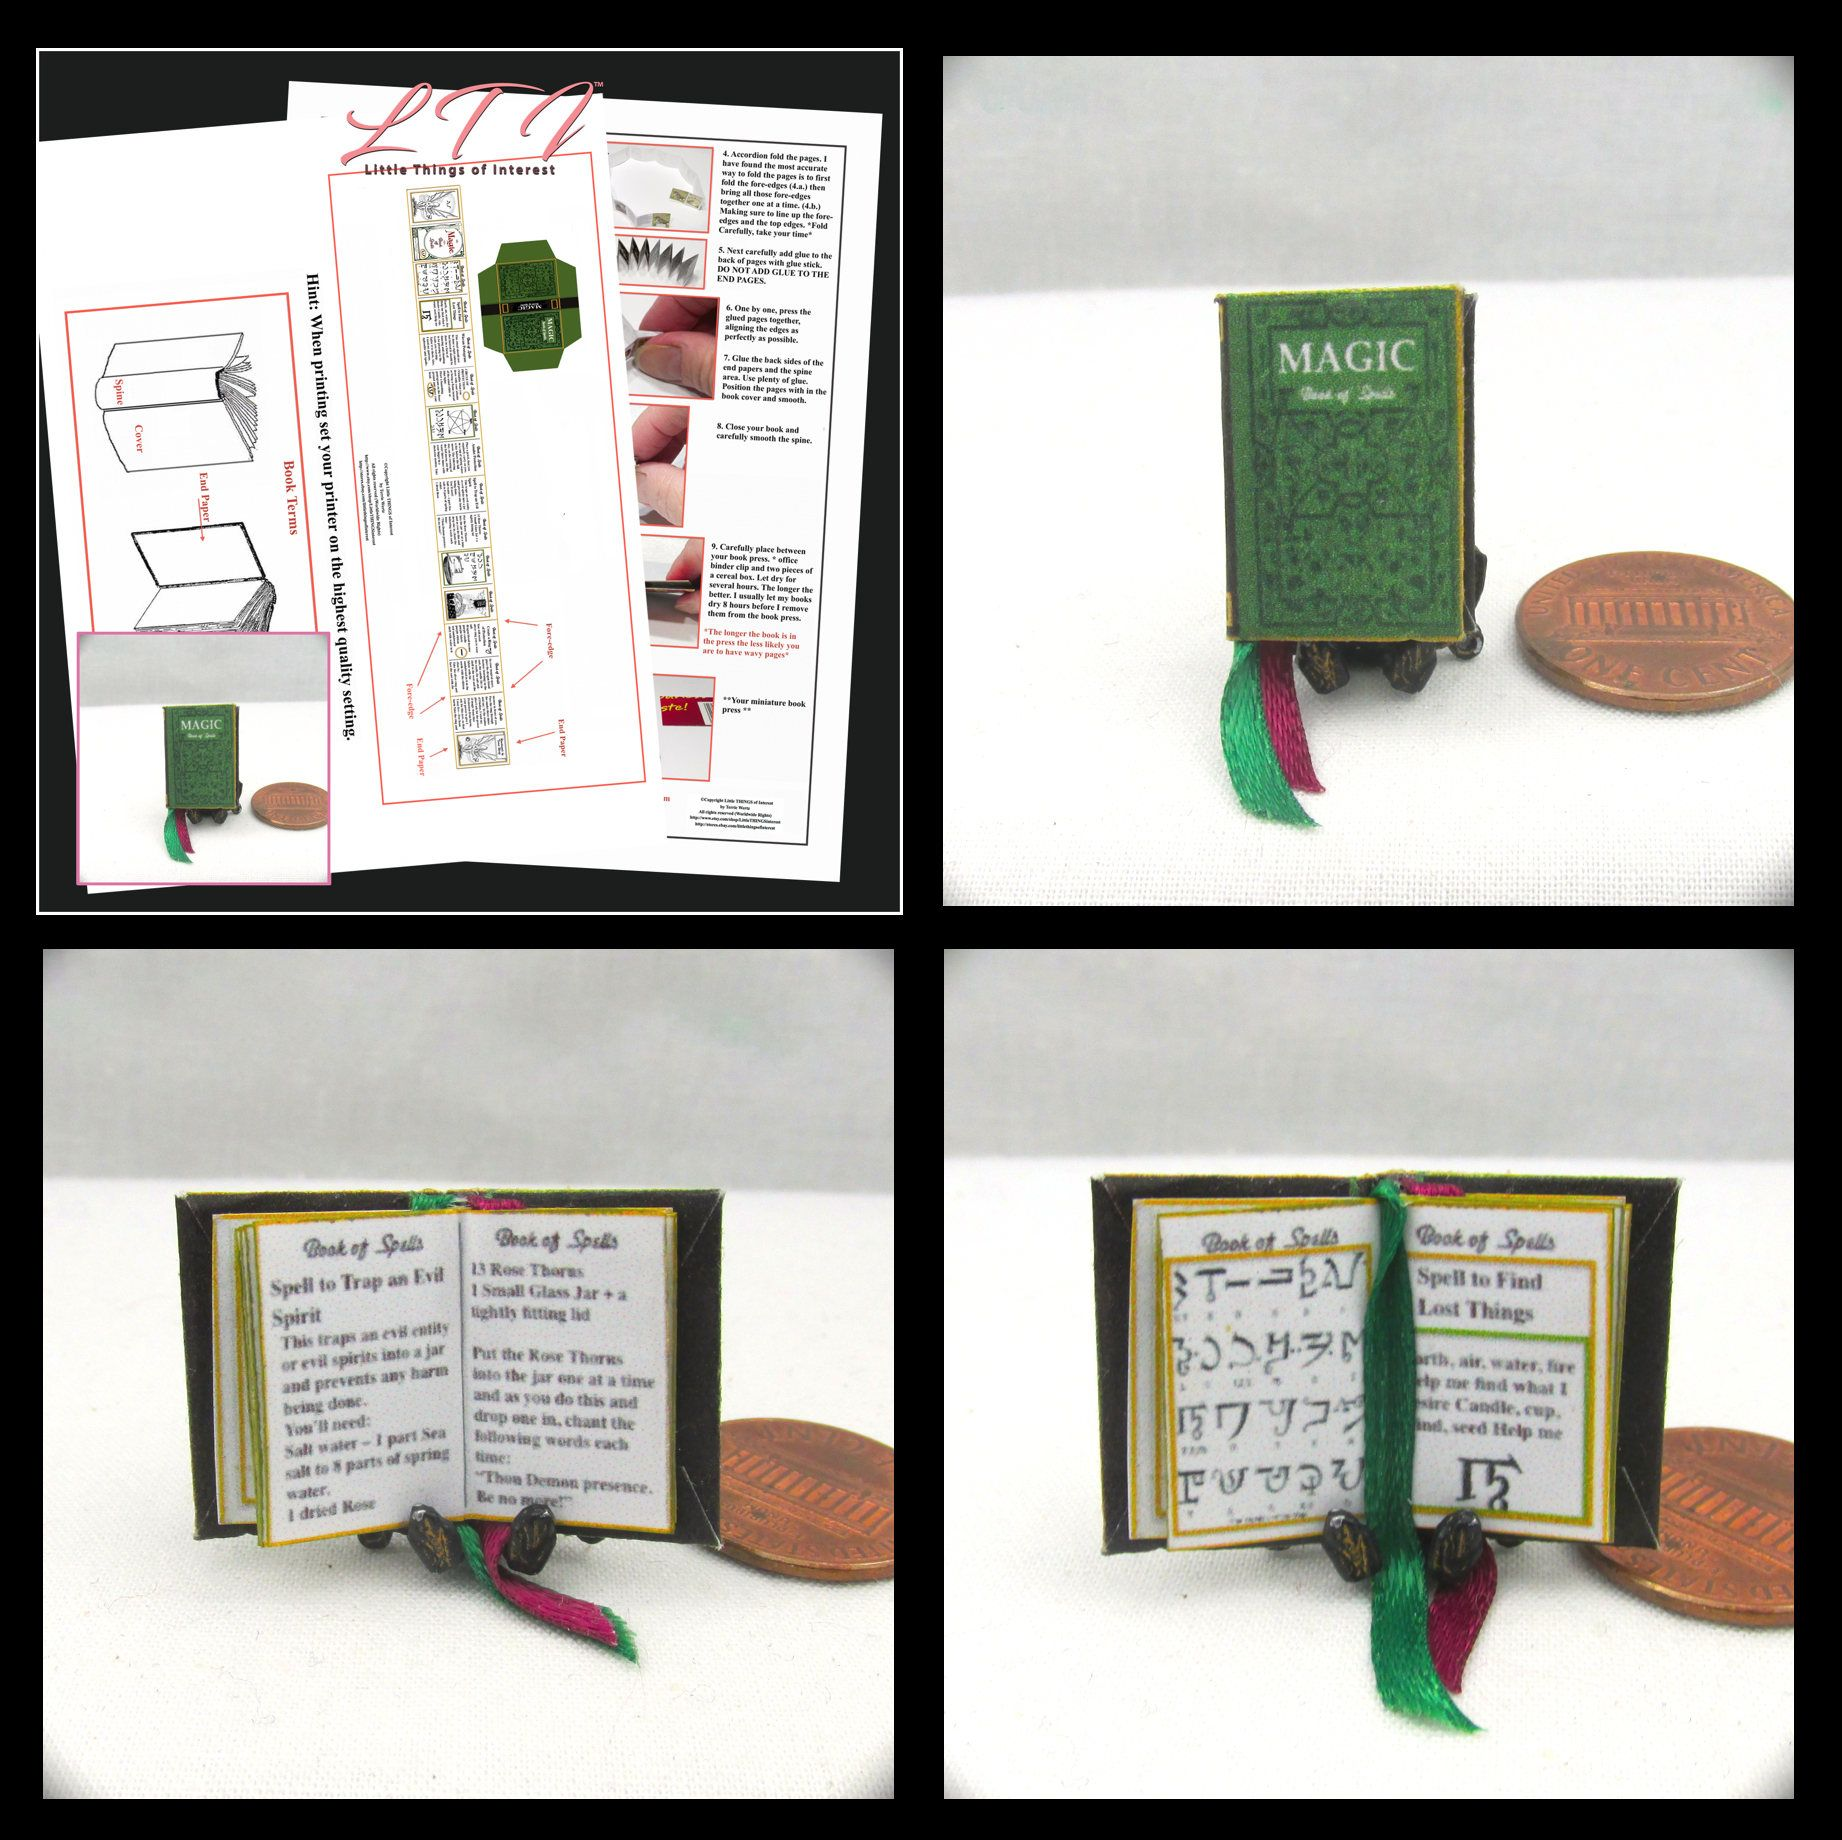 112 miniature dollhouse magic book of spells book pdf and tutorial 112 miniature dollhouse magic book of spells book pdf and tutorial printie printable download solutioingenieria Image collections